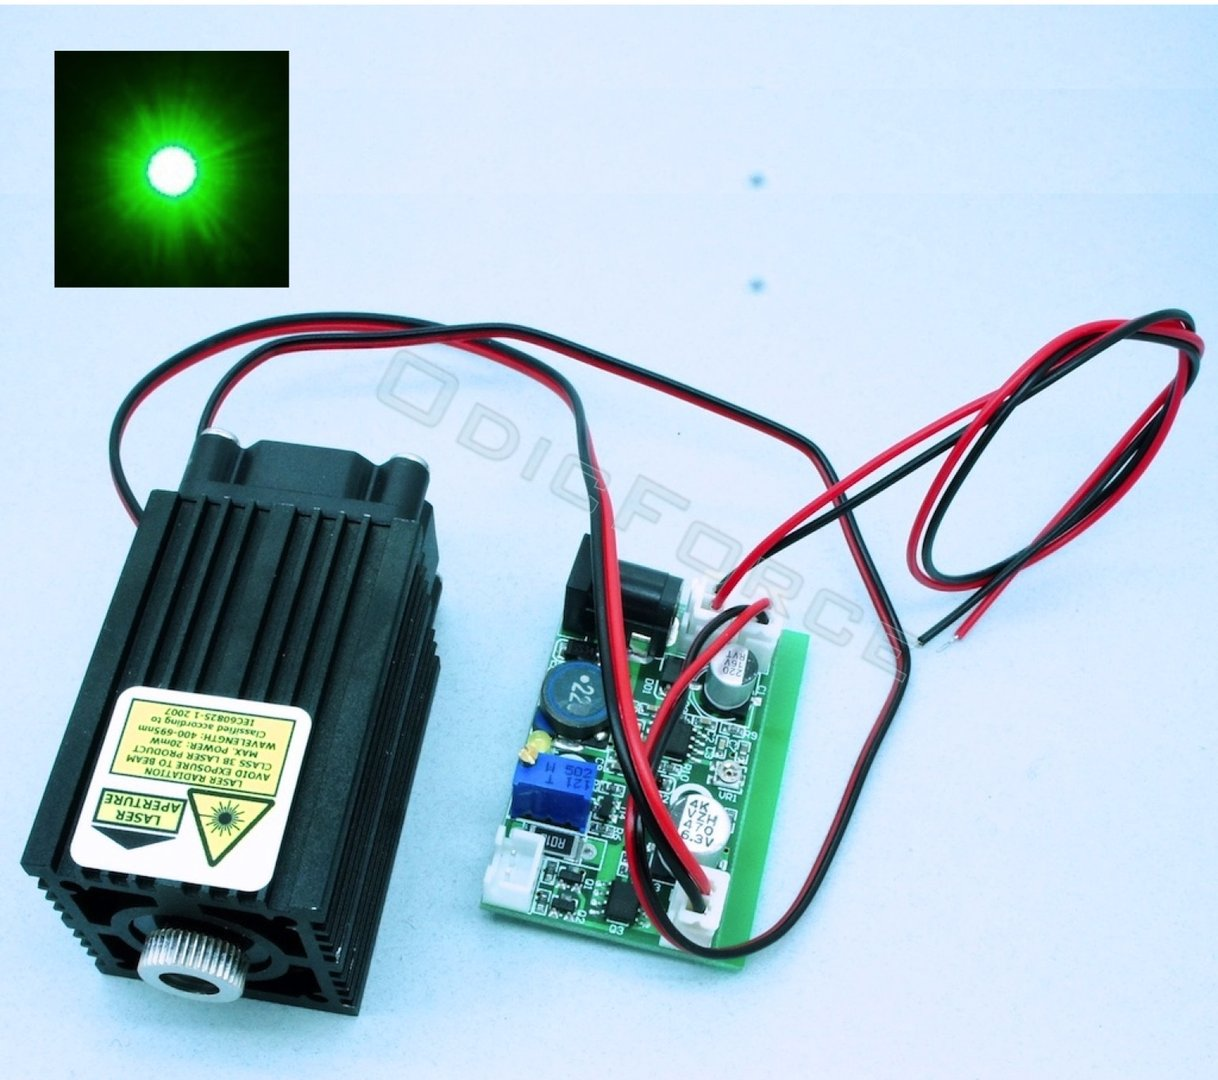 10mW  515-520nm Direct Diode Green Laser Module (Adjustable Focus) with TTL Modulation  (12V)